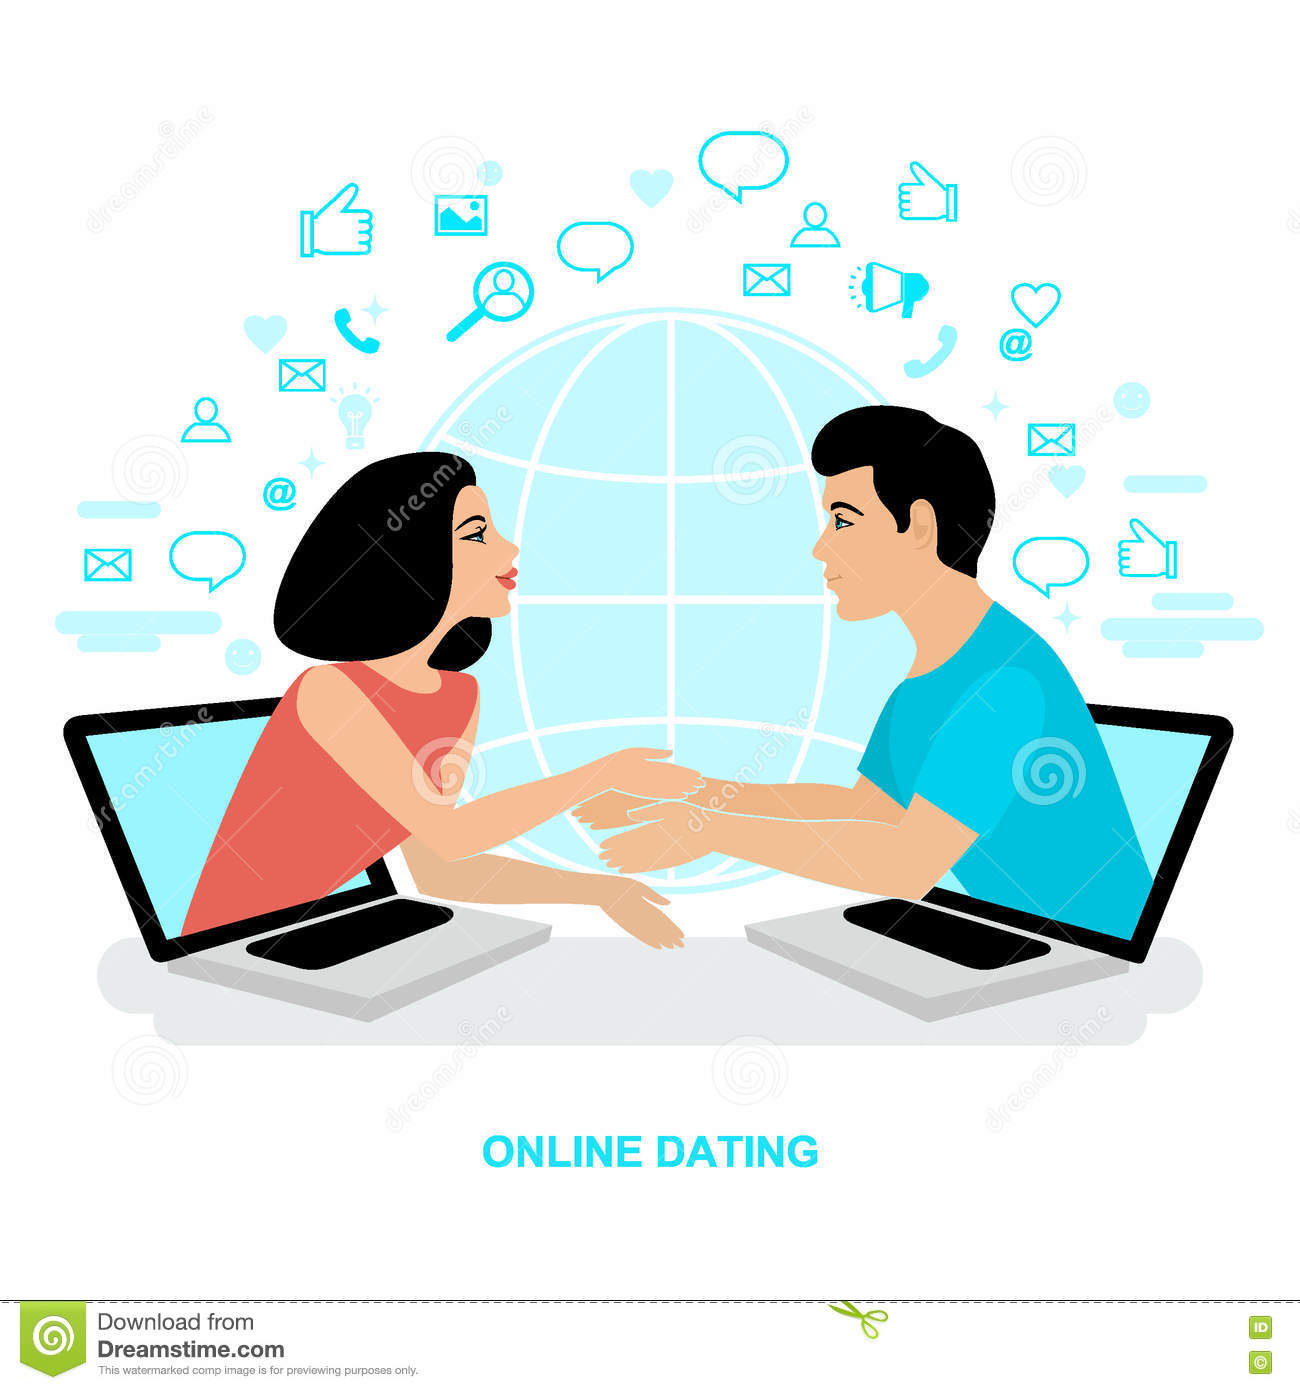 zeehan online hookup & dating Discreet hookup, who wants to party :)  tired of looking :/ trying to find common ground this whole online dating thing is just not working for me.